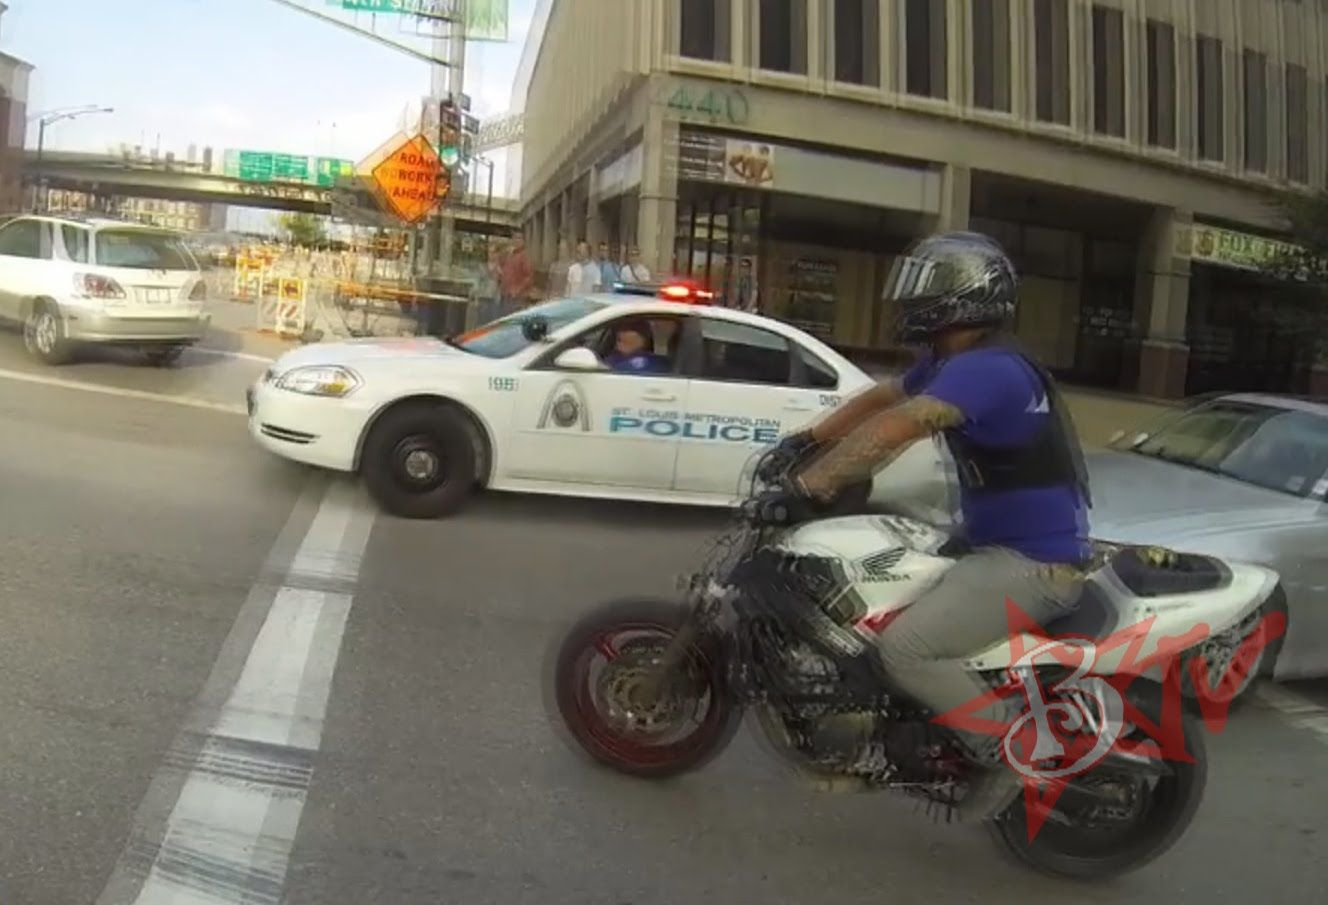 Bike Vs Police Chase Motorcycle Stunts Running From The Cops